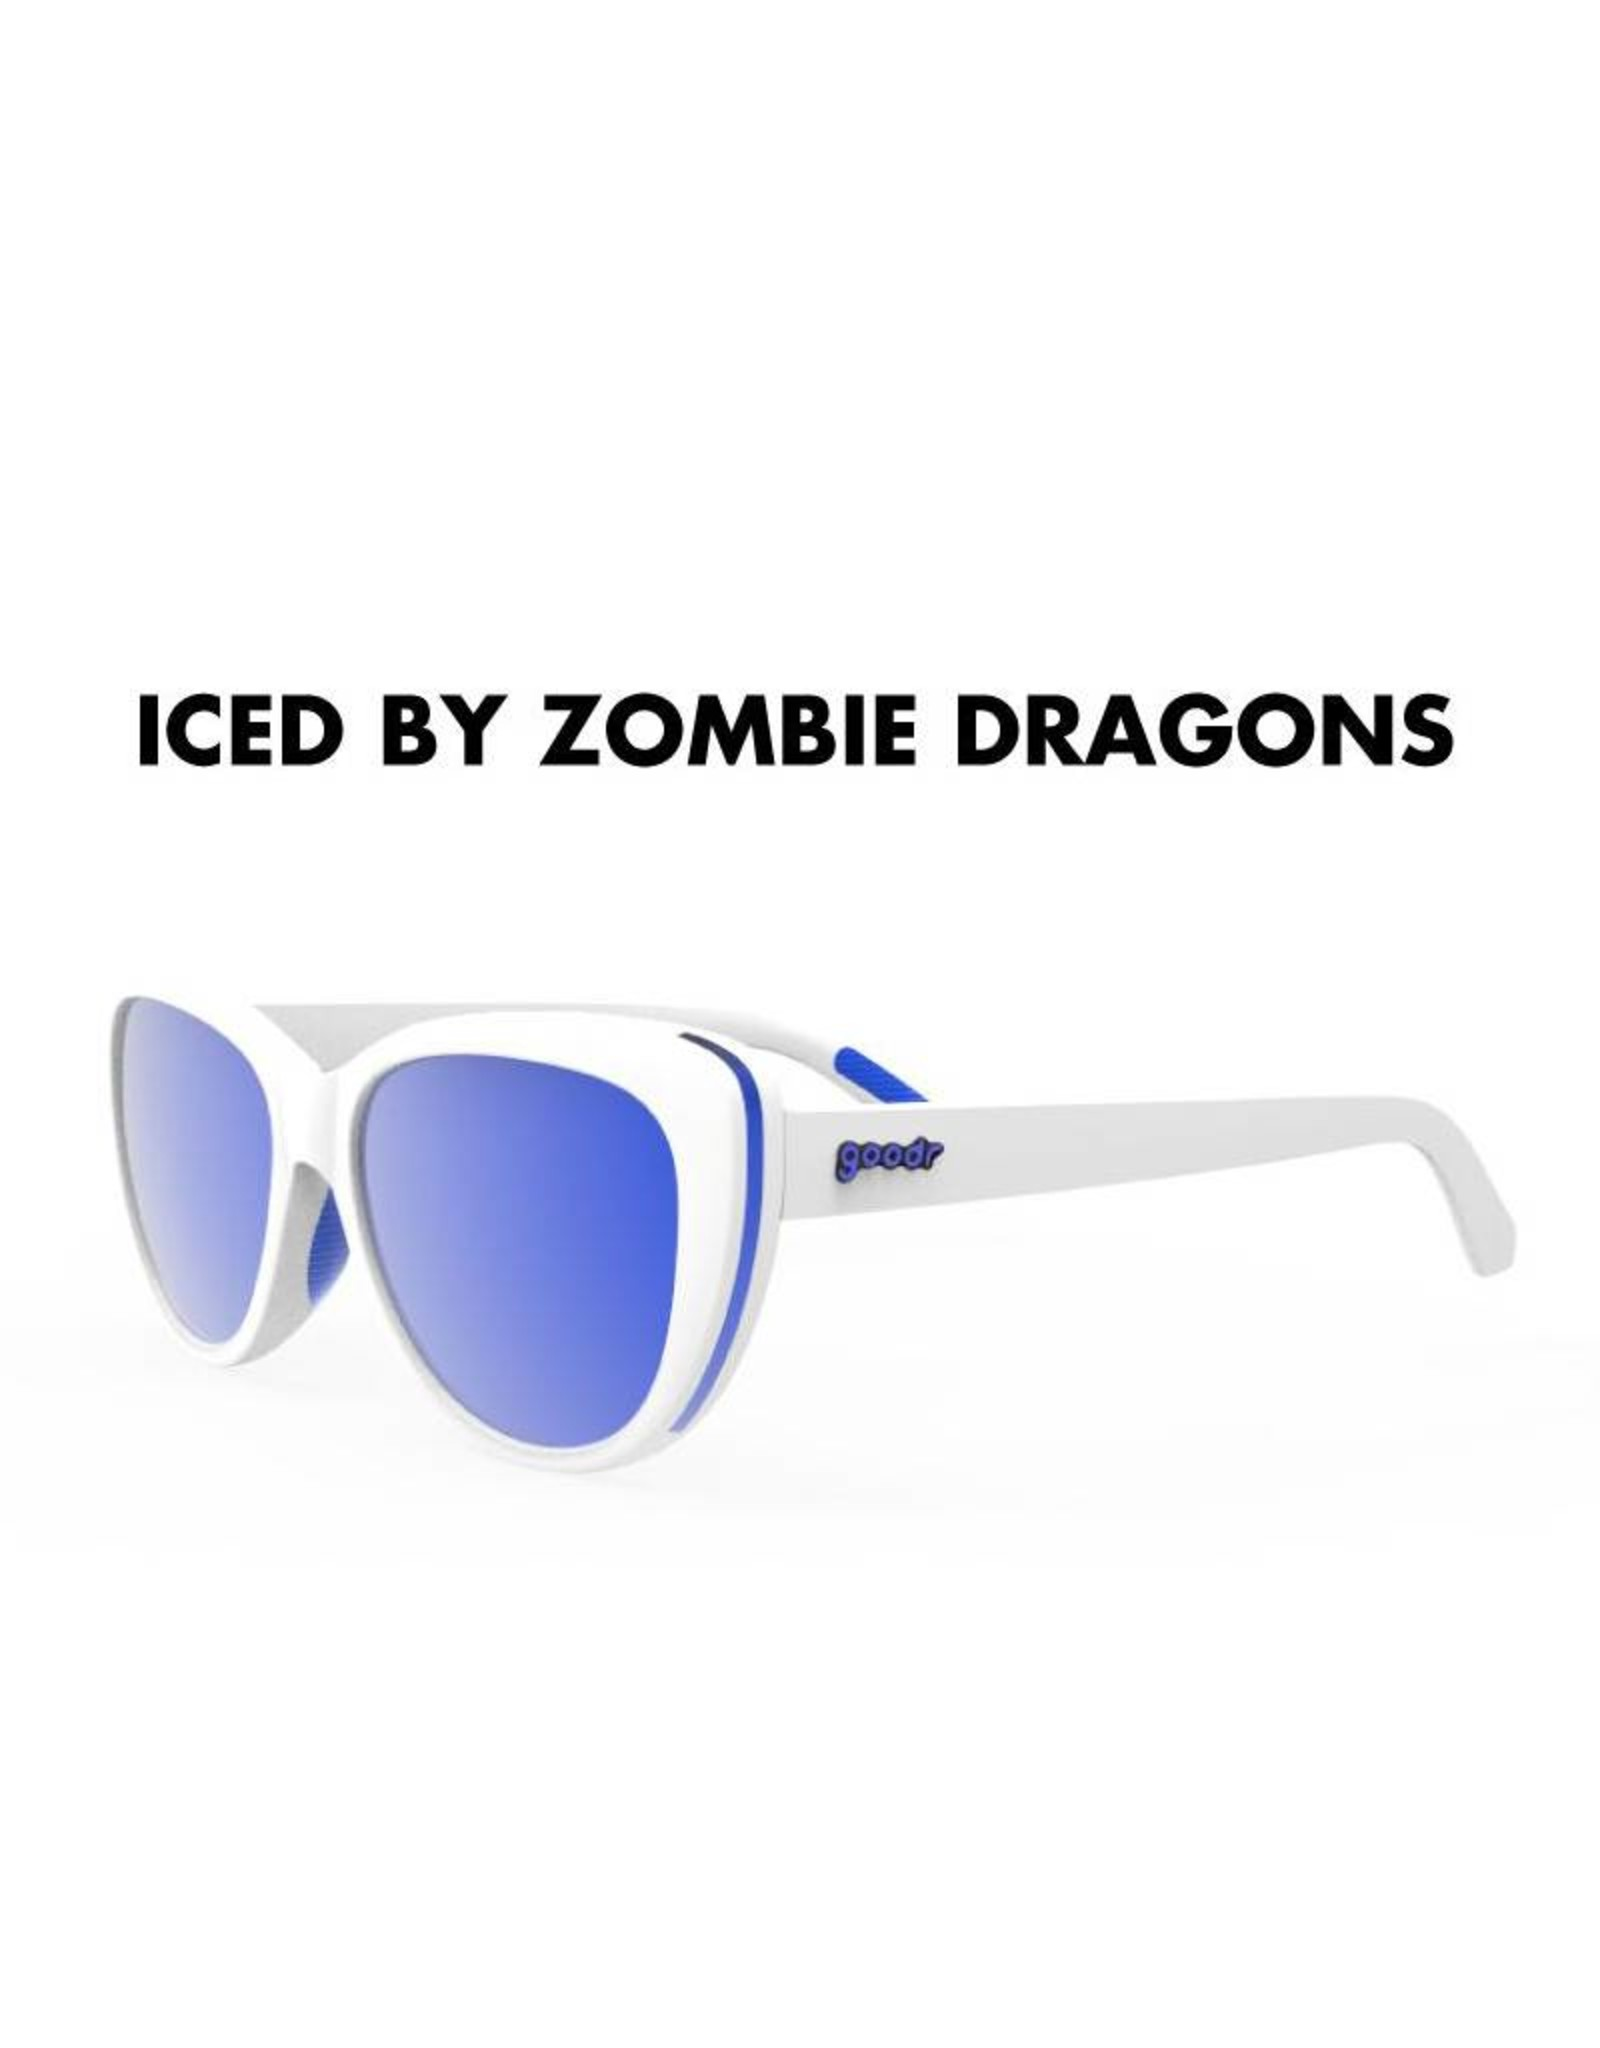 GOODR ICED BY ZOMBIE DRAGONS